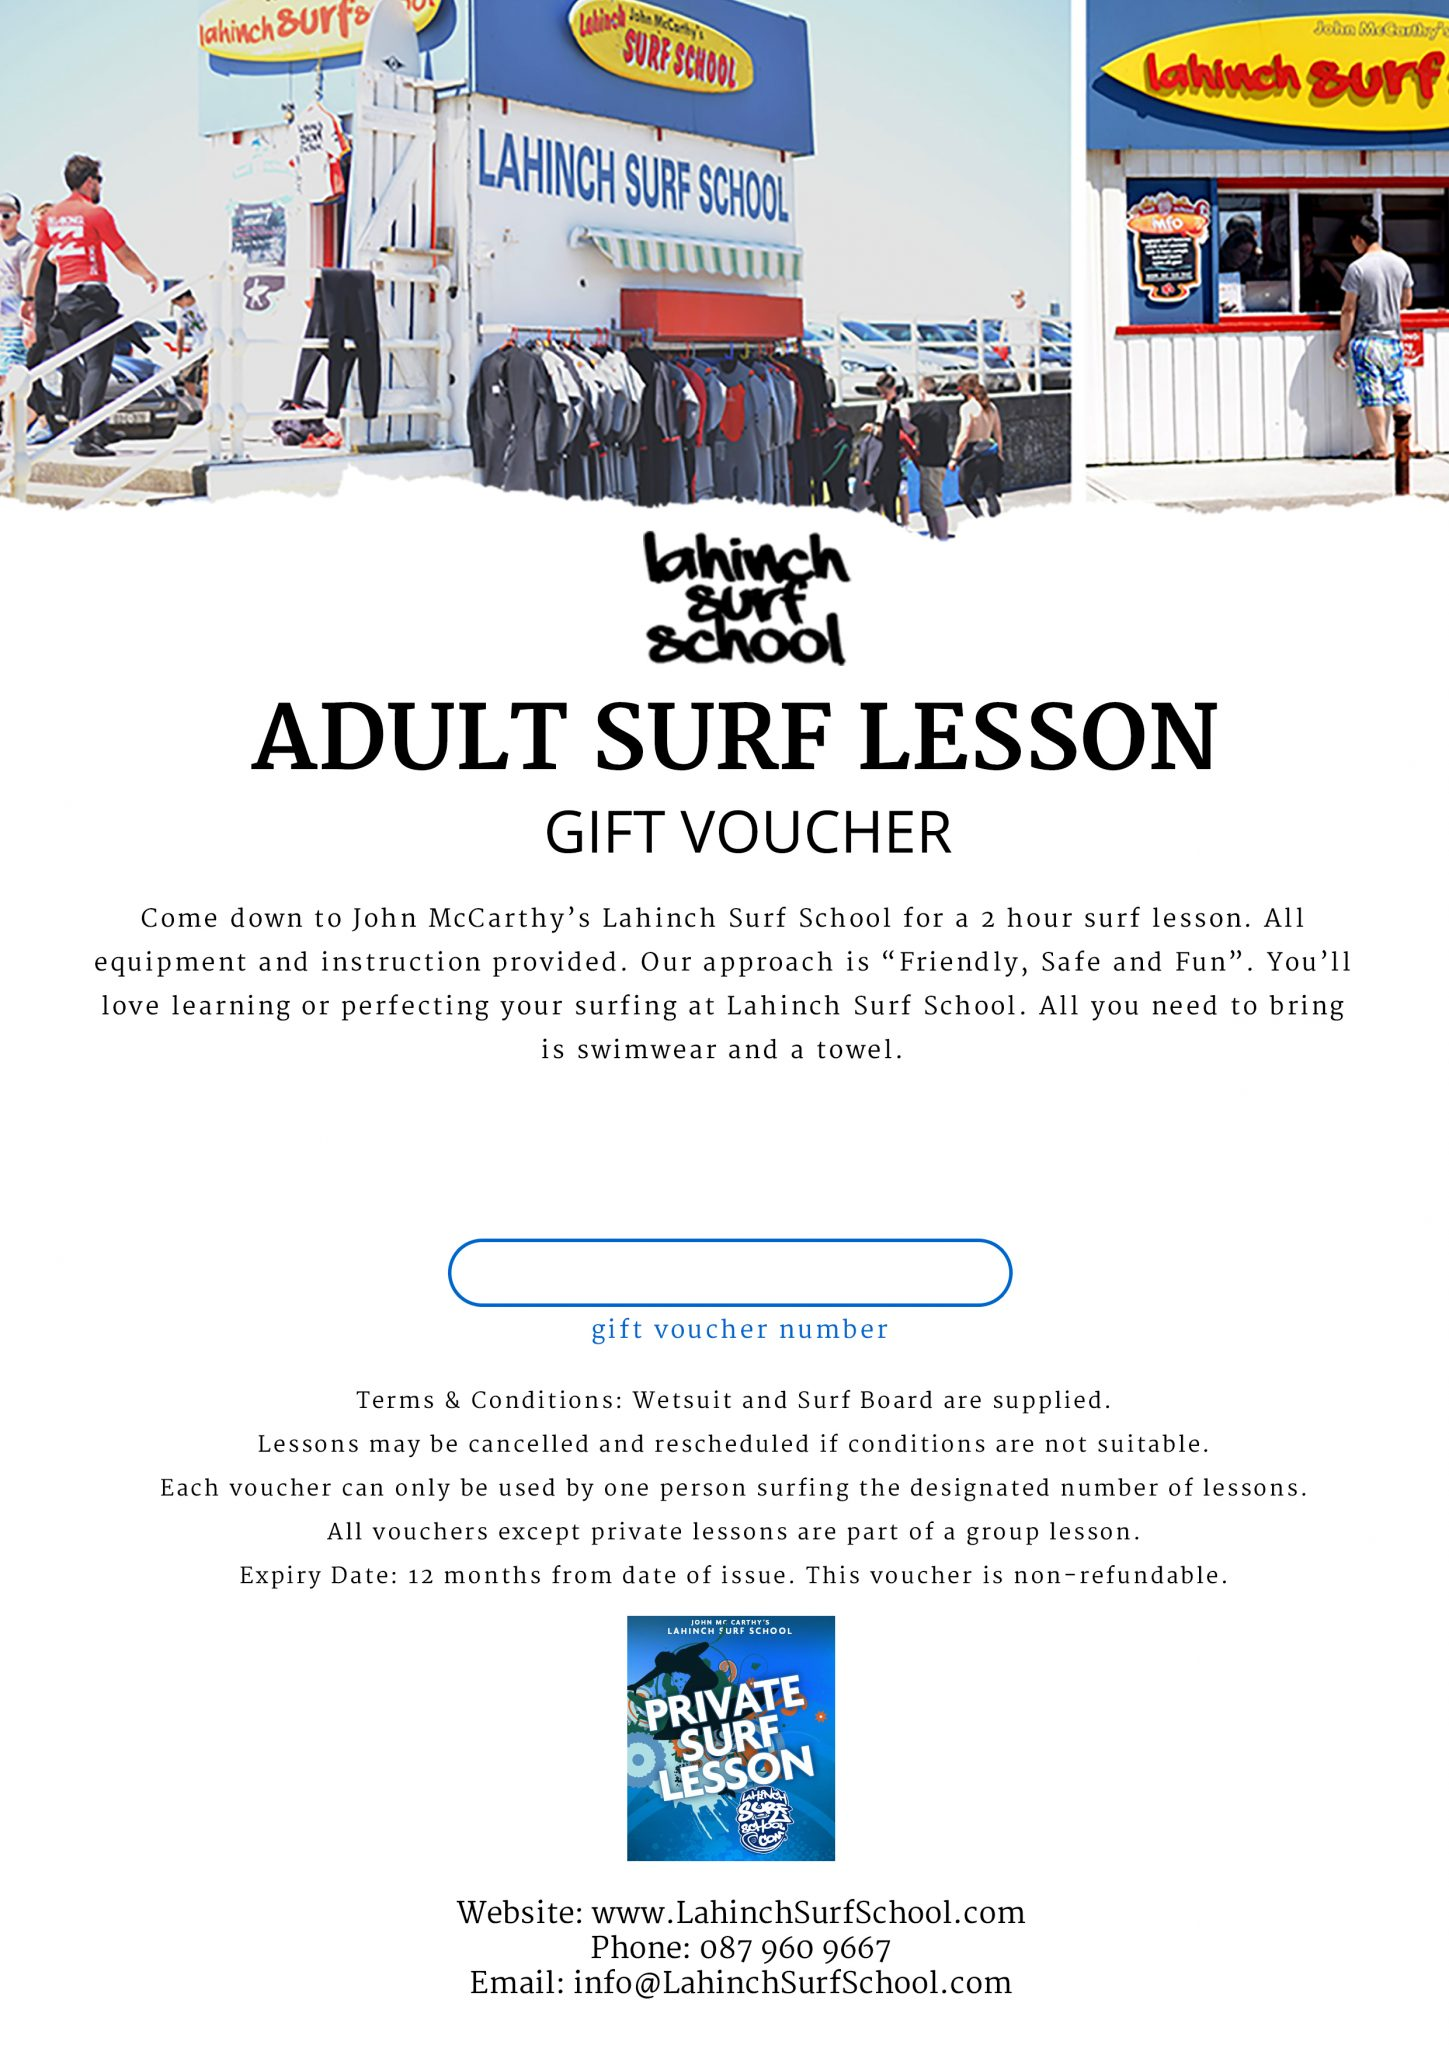 Terms & Conditions: Wetsuit and Surf Board are supplied. Lessons may be cancelled and rescheduled if conditions are not suitable. Each voucher can only be used by one person surfing the designated number of lessons. All vouchers except private lessons are part of a group lesson. Expiry Date: 12 months from date of issue. This voucher is non-refundable.